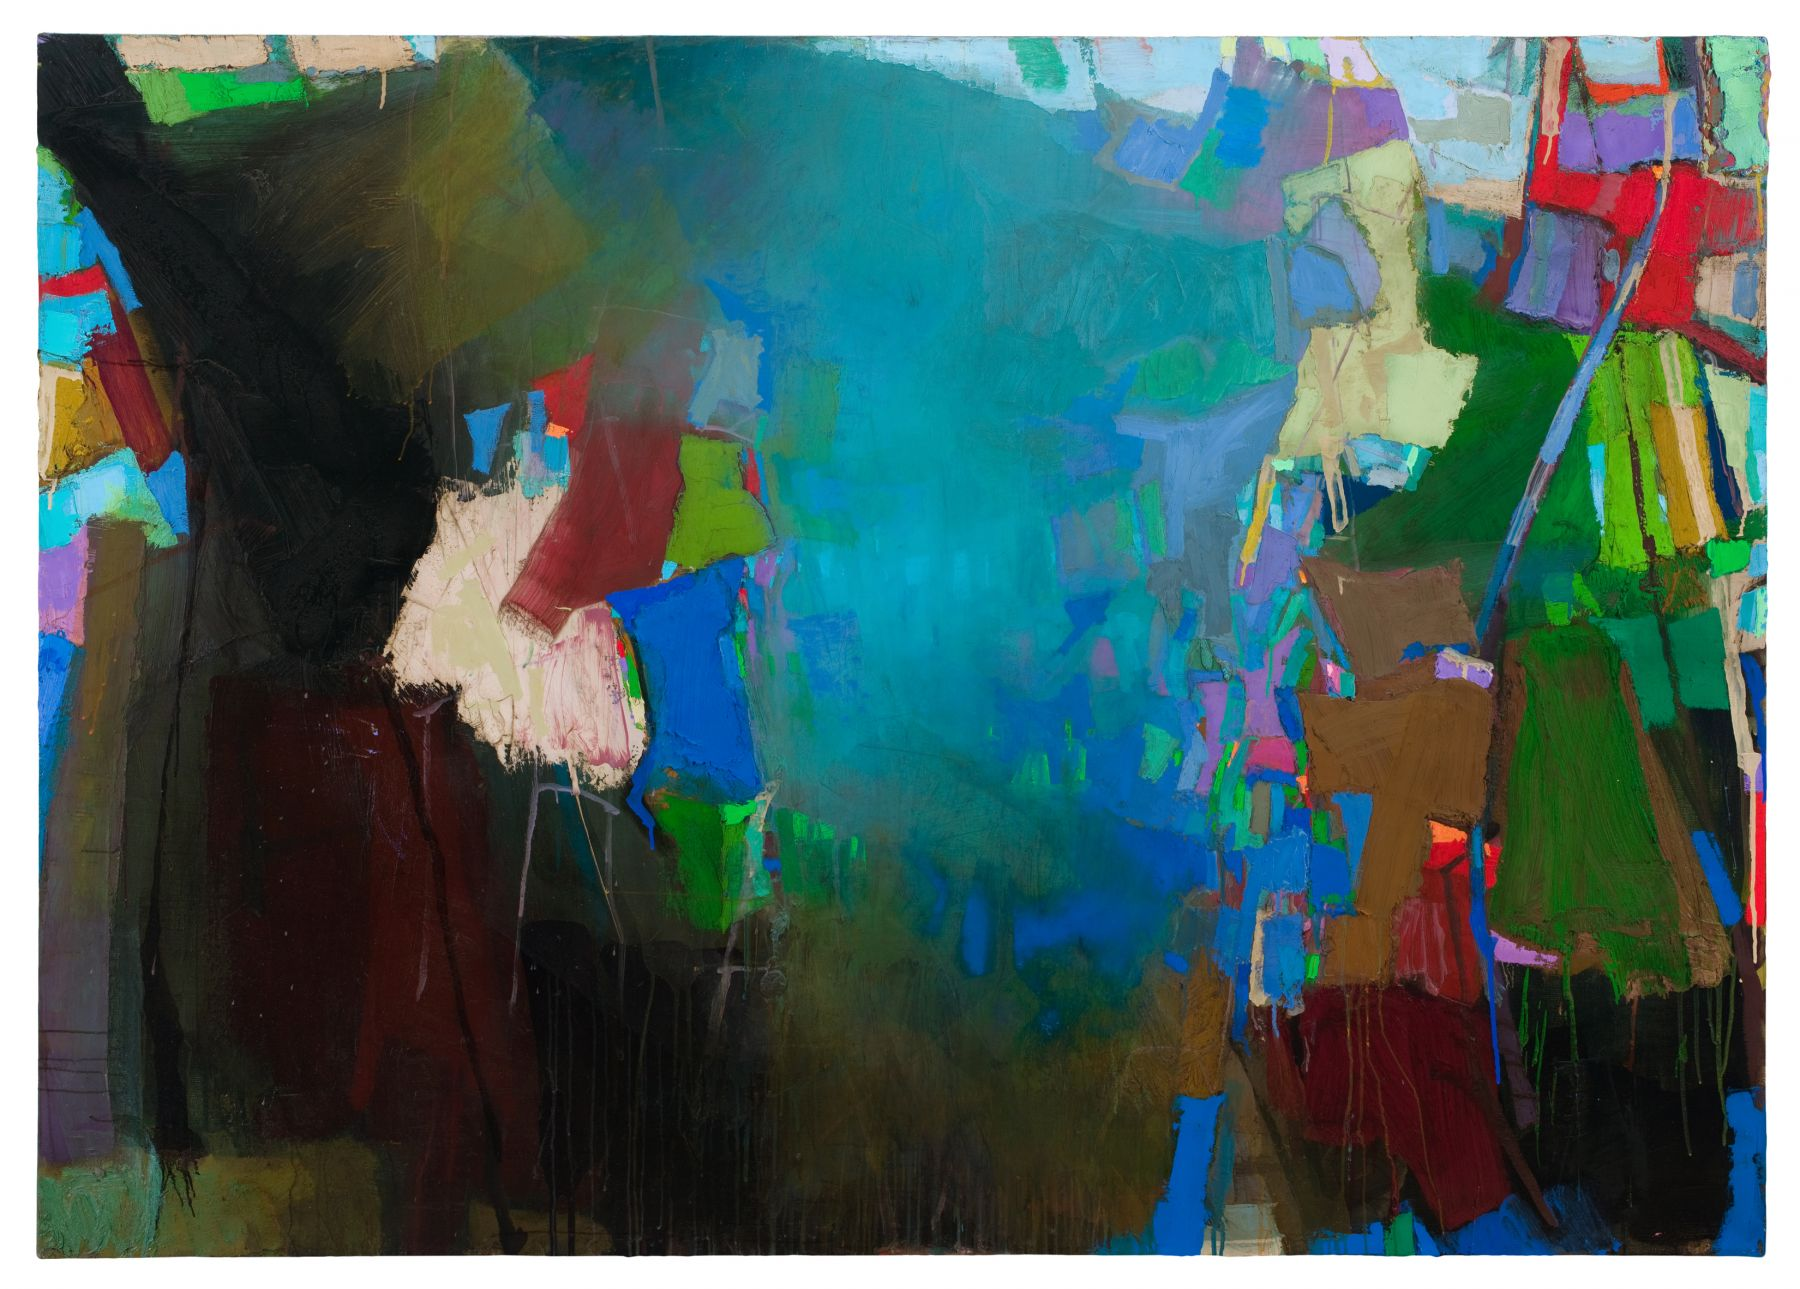 Brian Rutenberg Blue Drop (SOLD), 2010, oil on linen, 56 x 79 inches